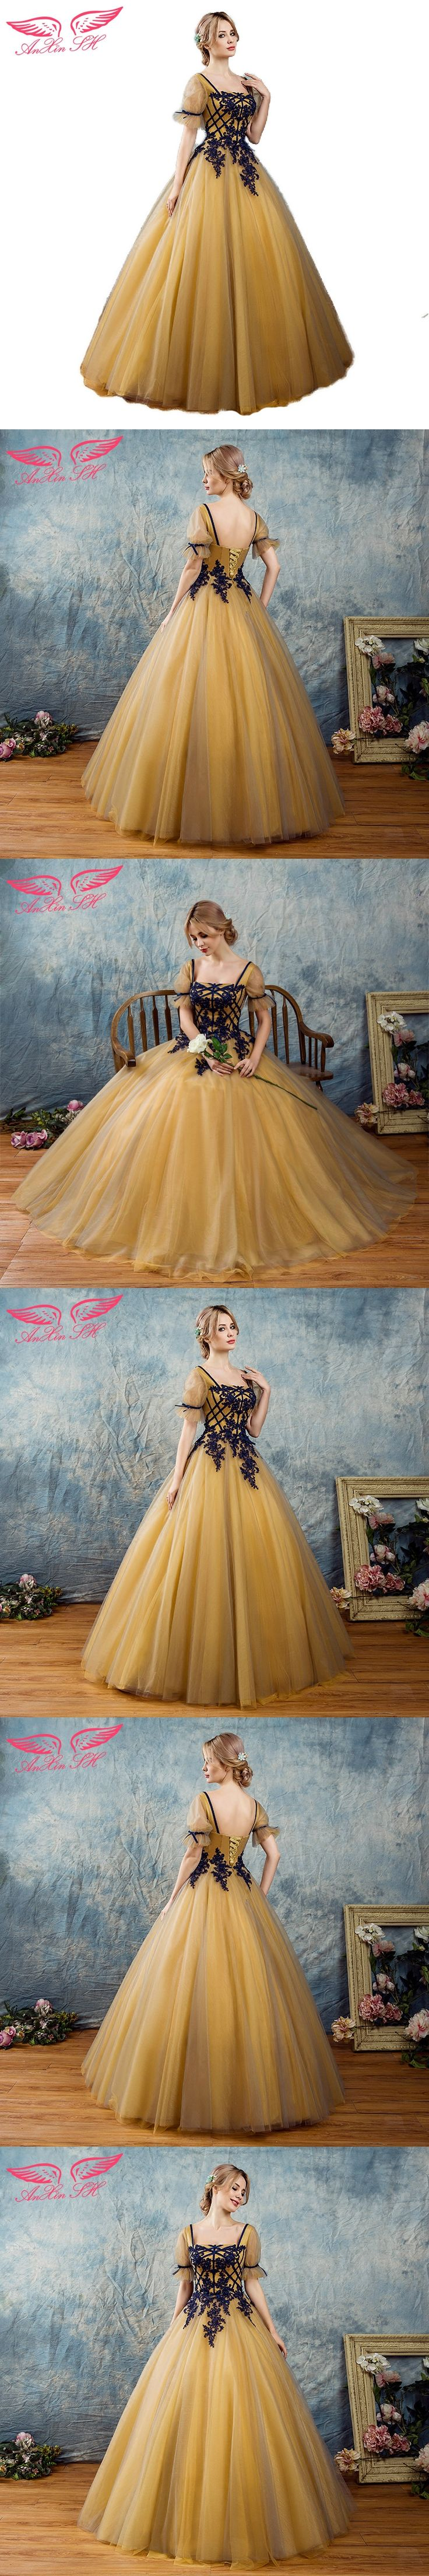 AnXin SH Fashion golden Lace Embroidery blue flower Evening Dresses Elegant Party party princess ruffles bow evening dress